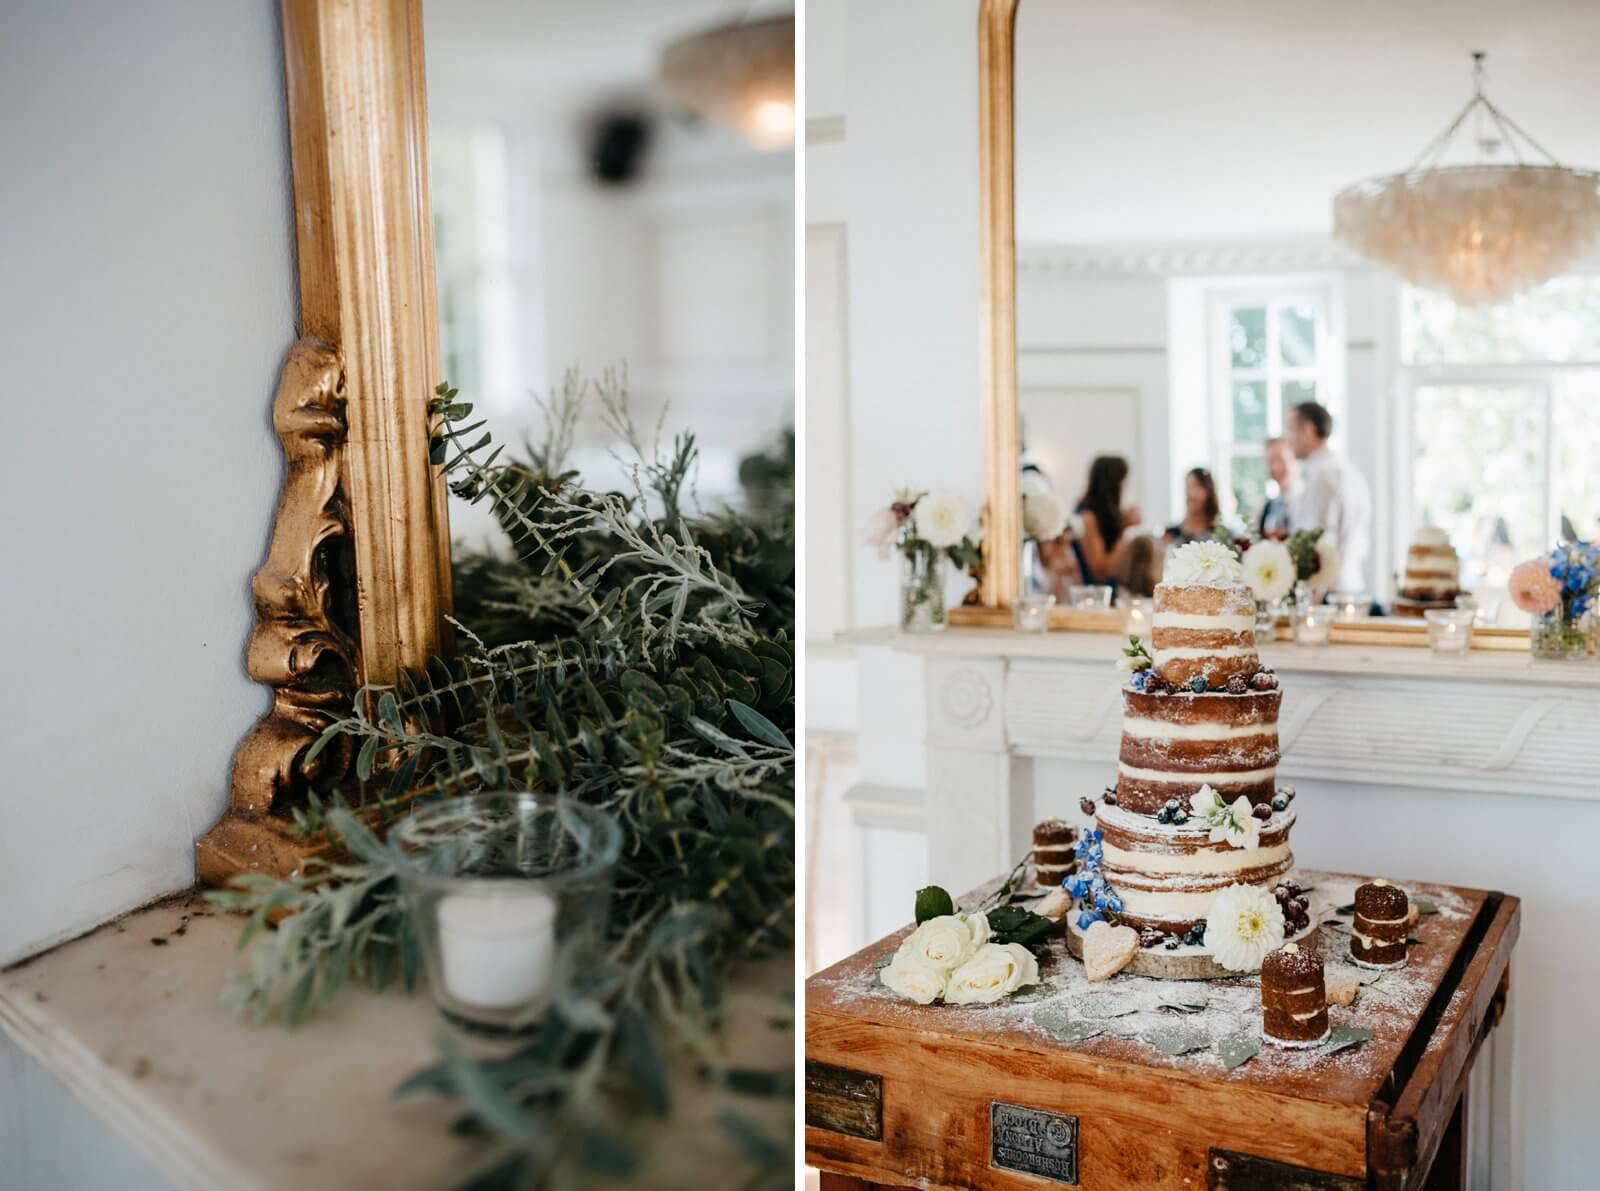 light and airy Belair House wedding venue details including gold framed mirror and naked cake